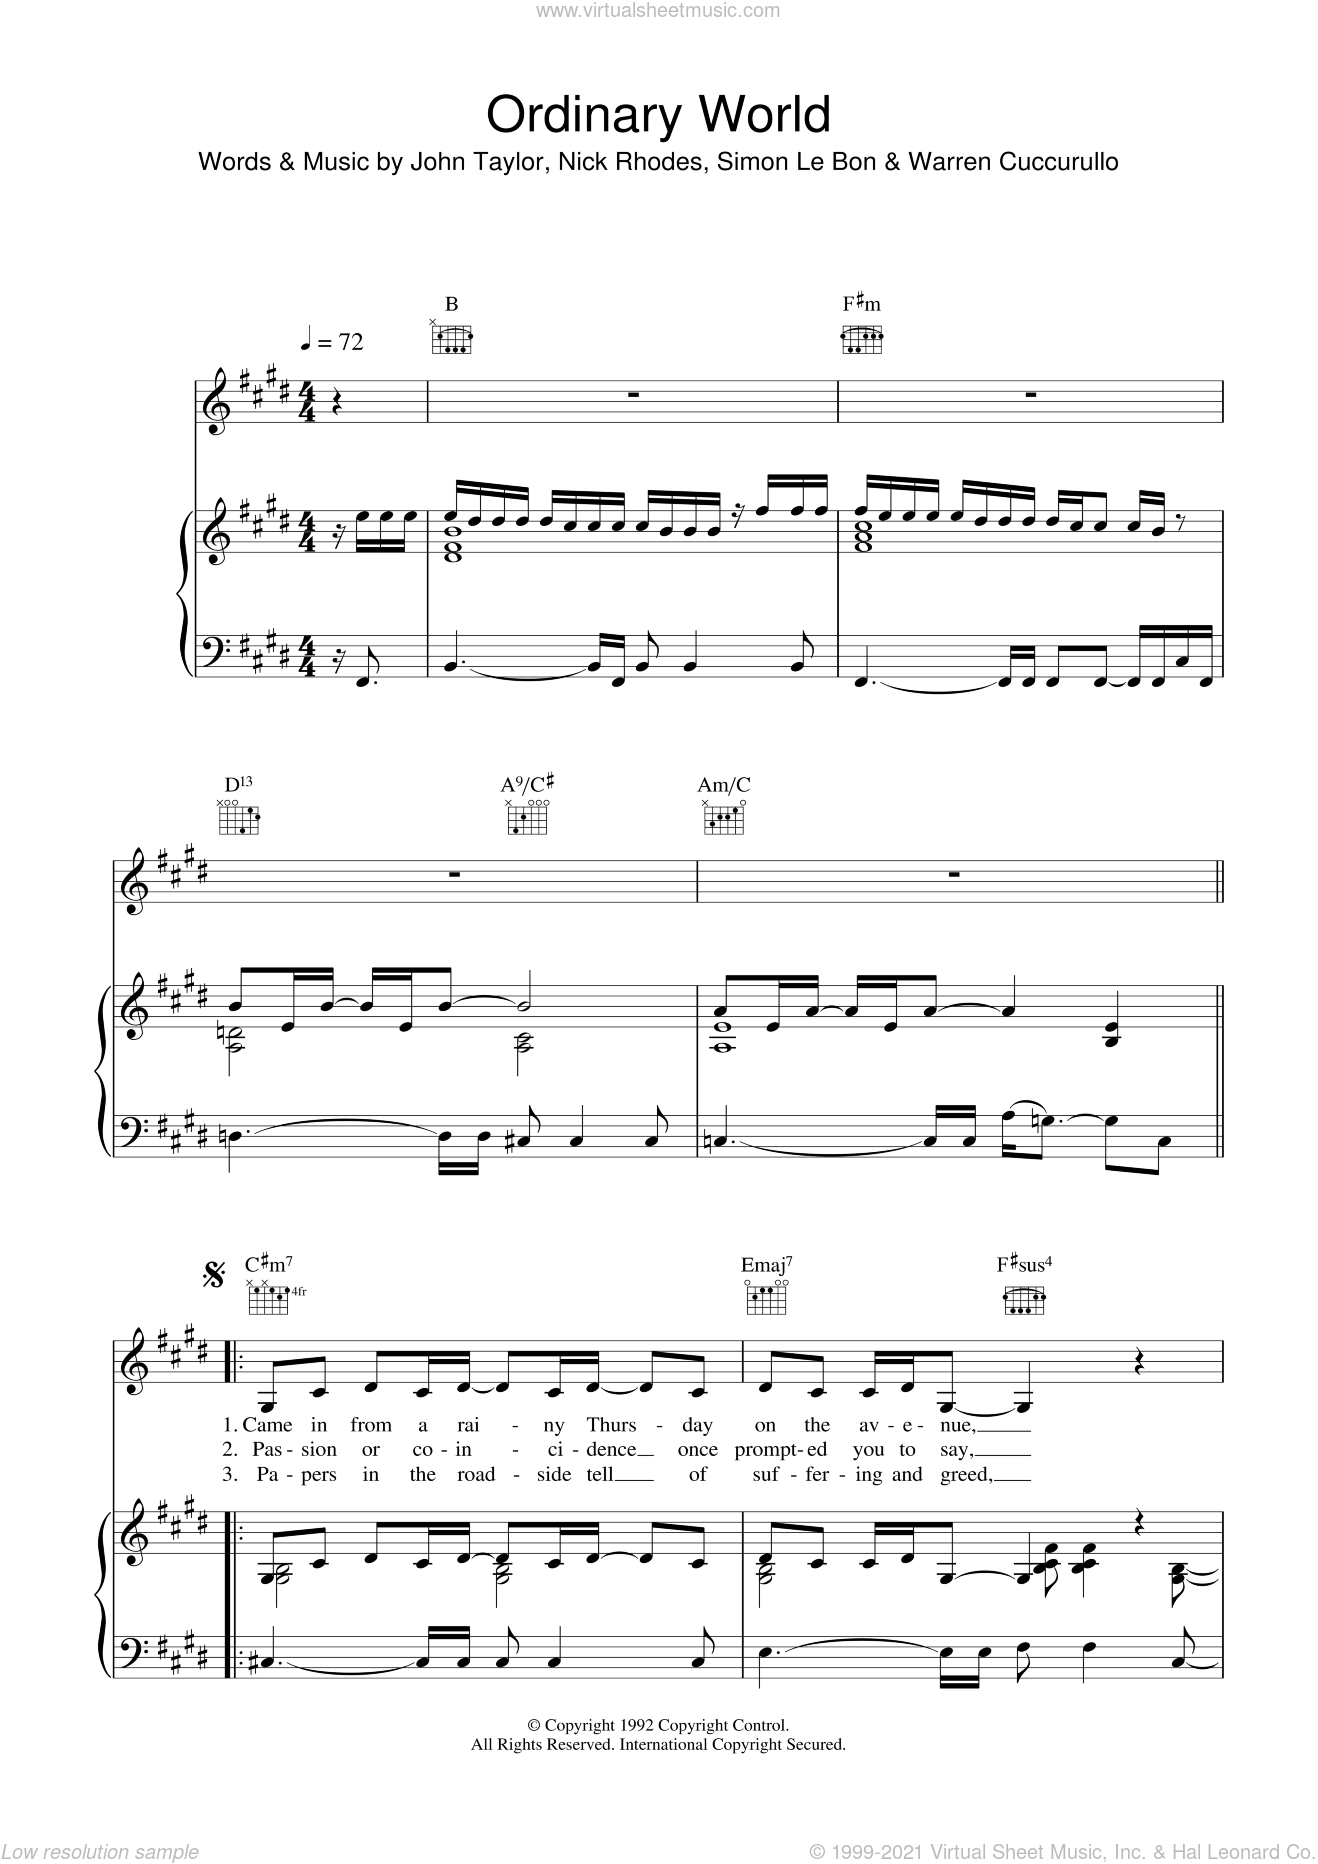 Ordinary World sheet music for voice, piano or guitar by Duran Duran, John Taylor, Nick Rhodes, Simon LeBon and Warren Cuccurullo, intermediate skill level